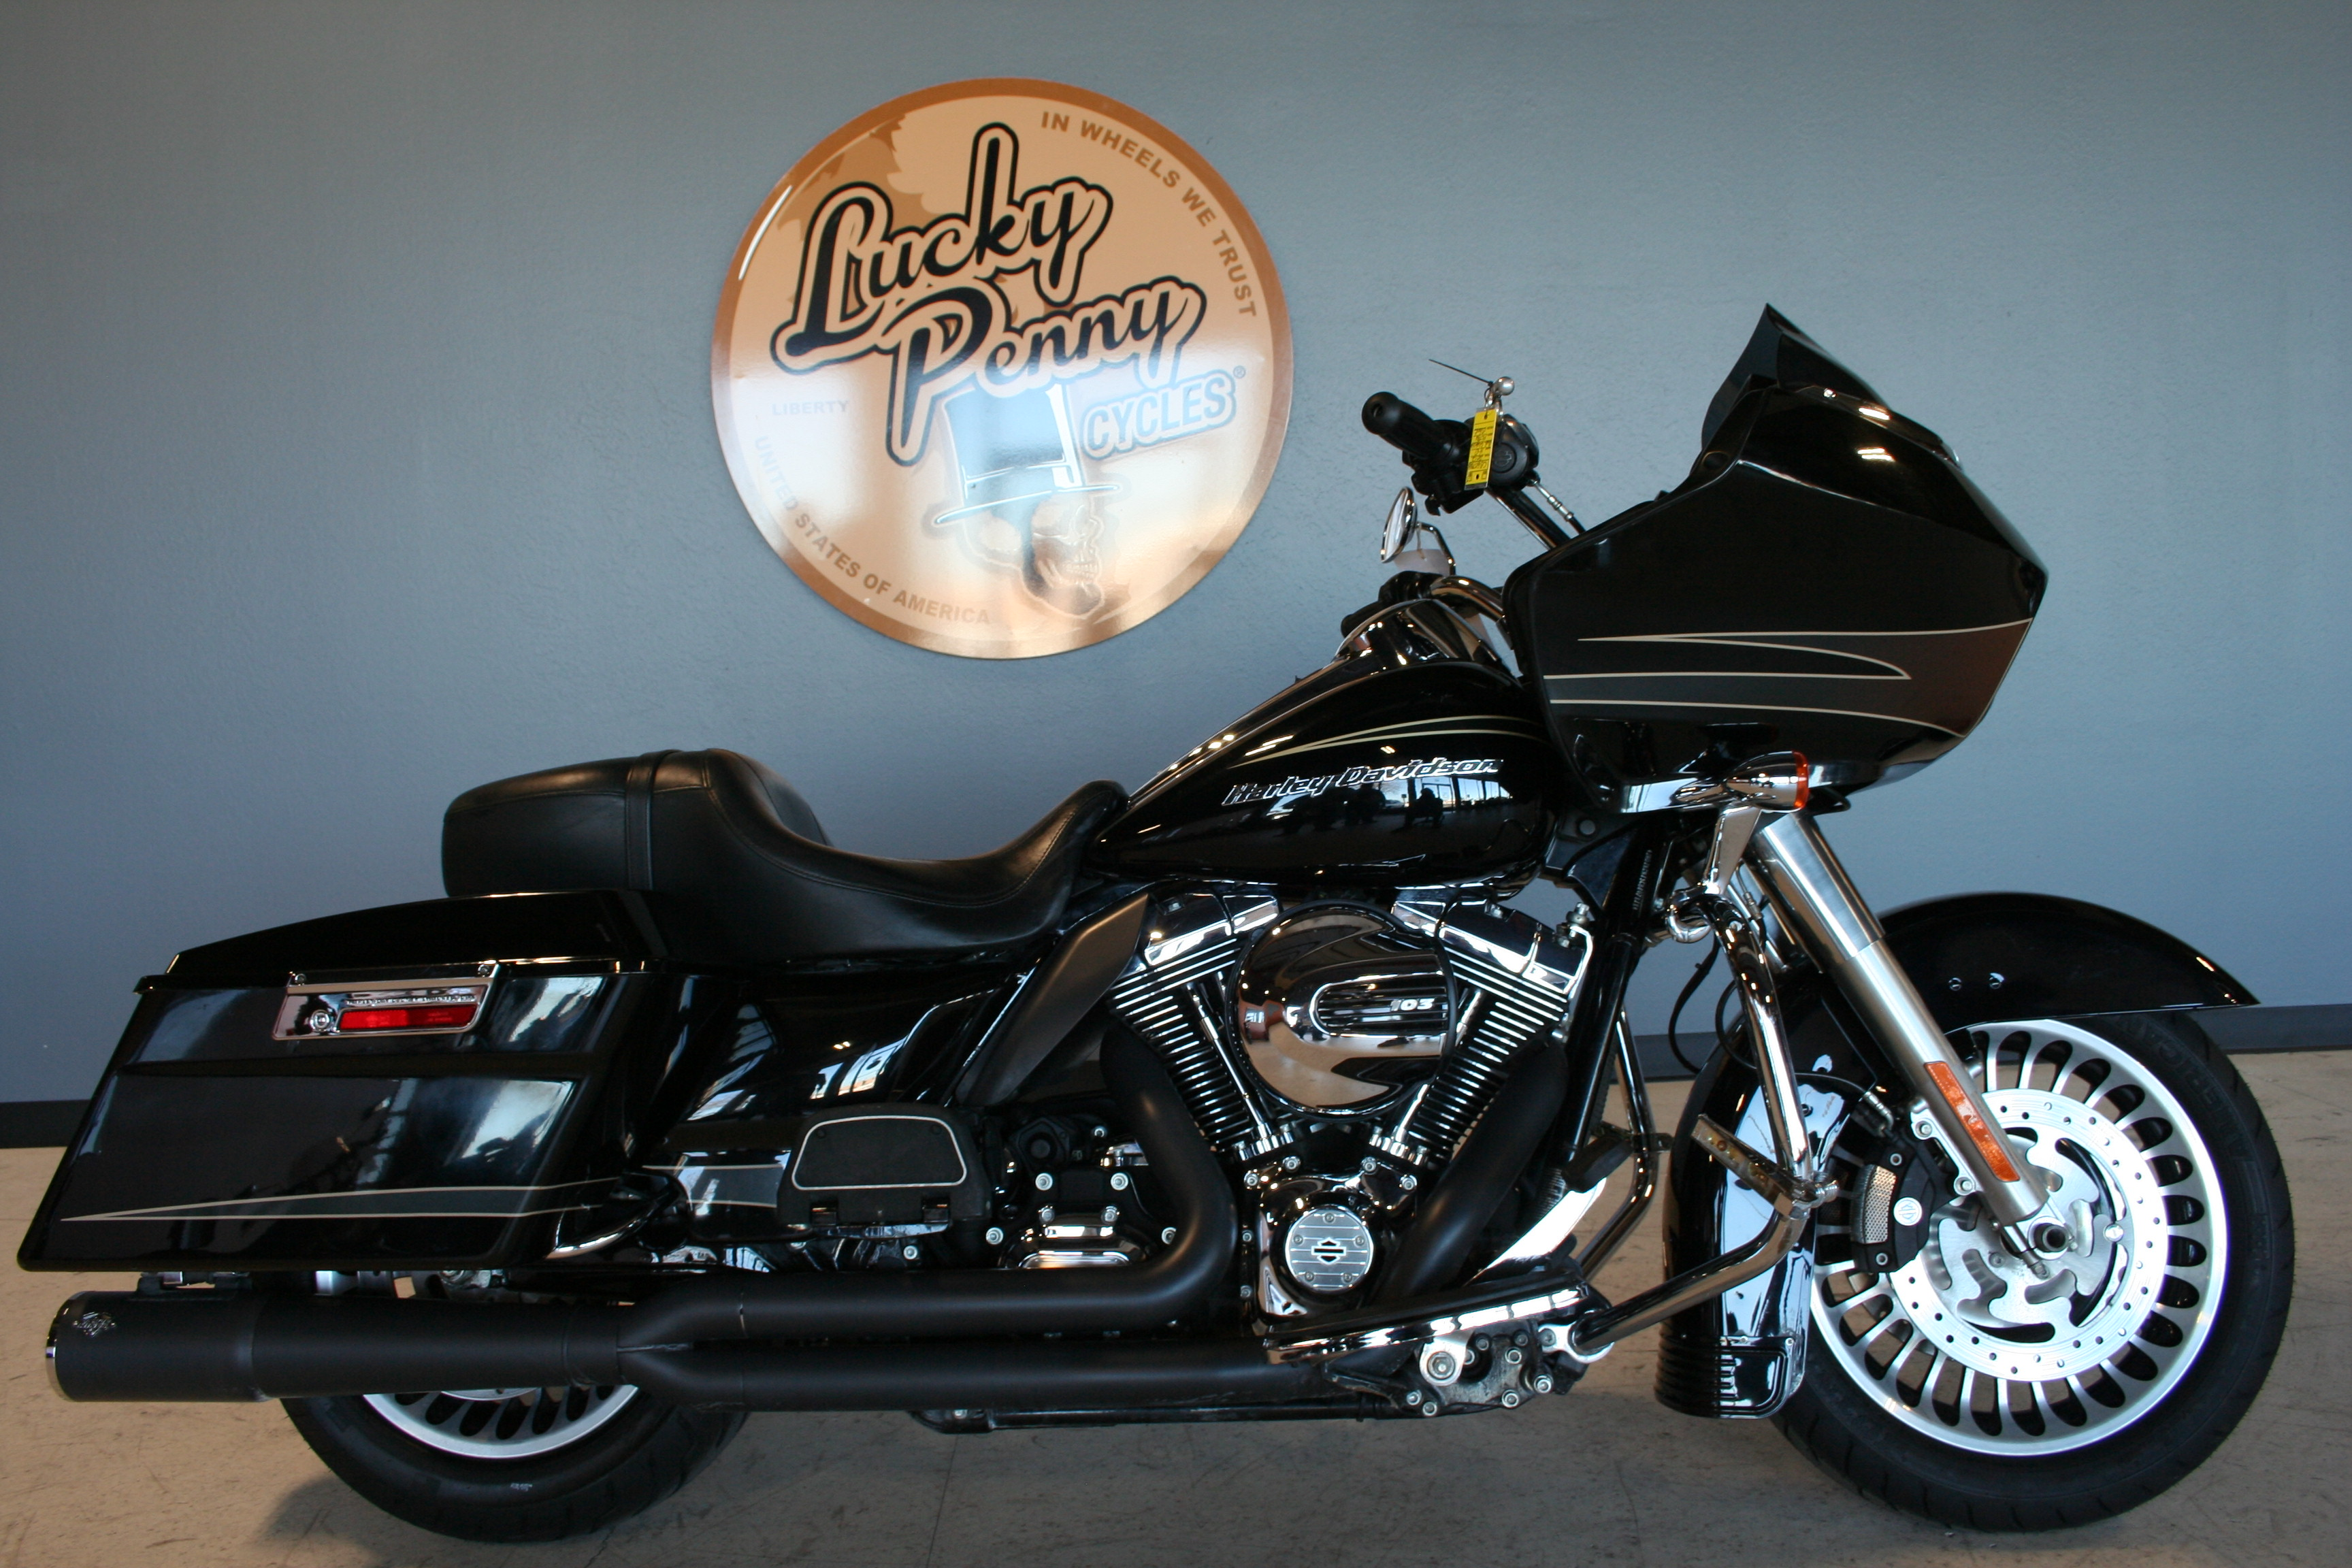 Pre-Owned 2012 Harley-Davidson Road Glide Ultra